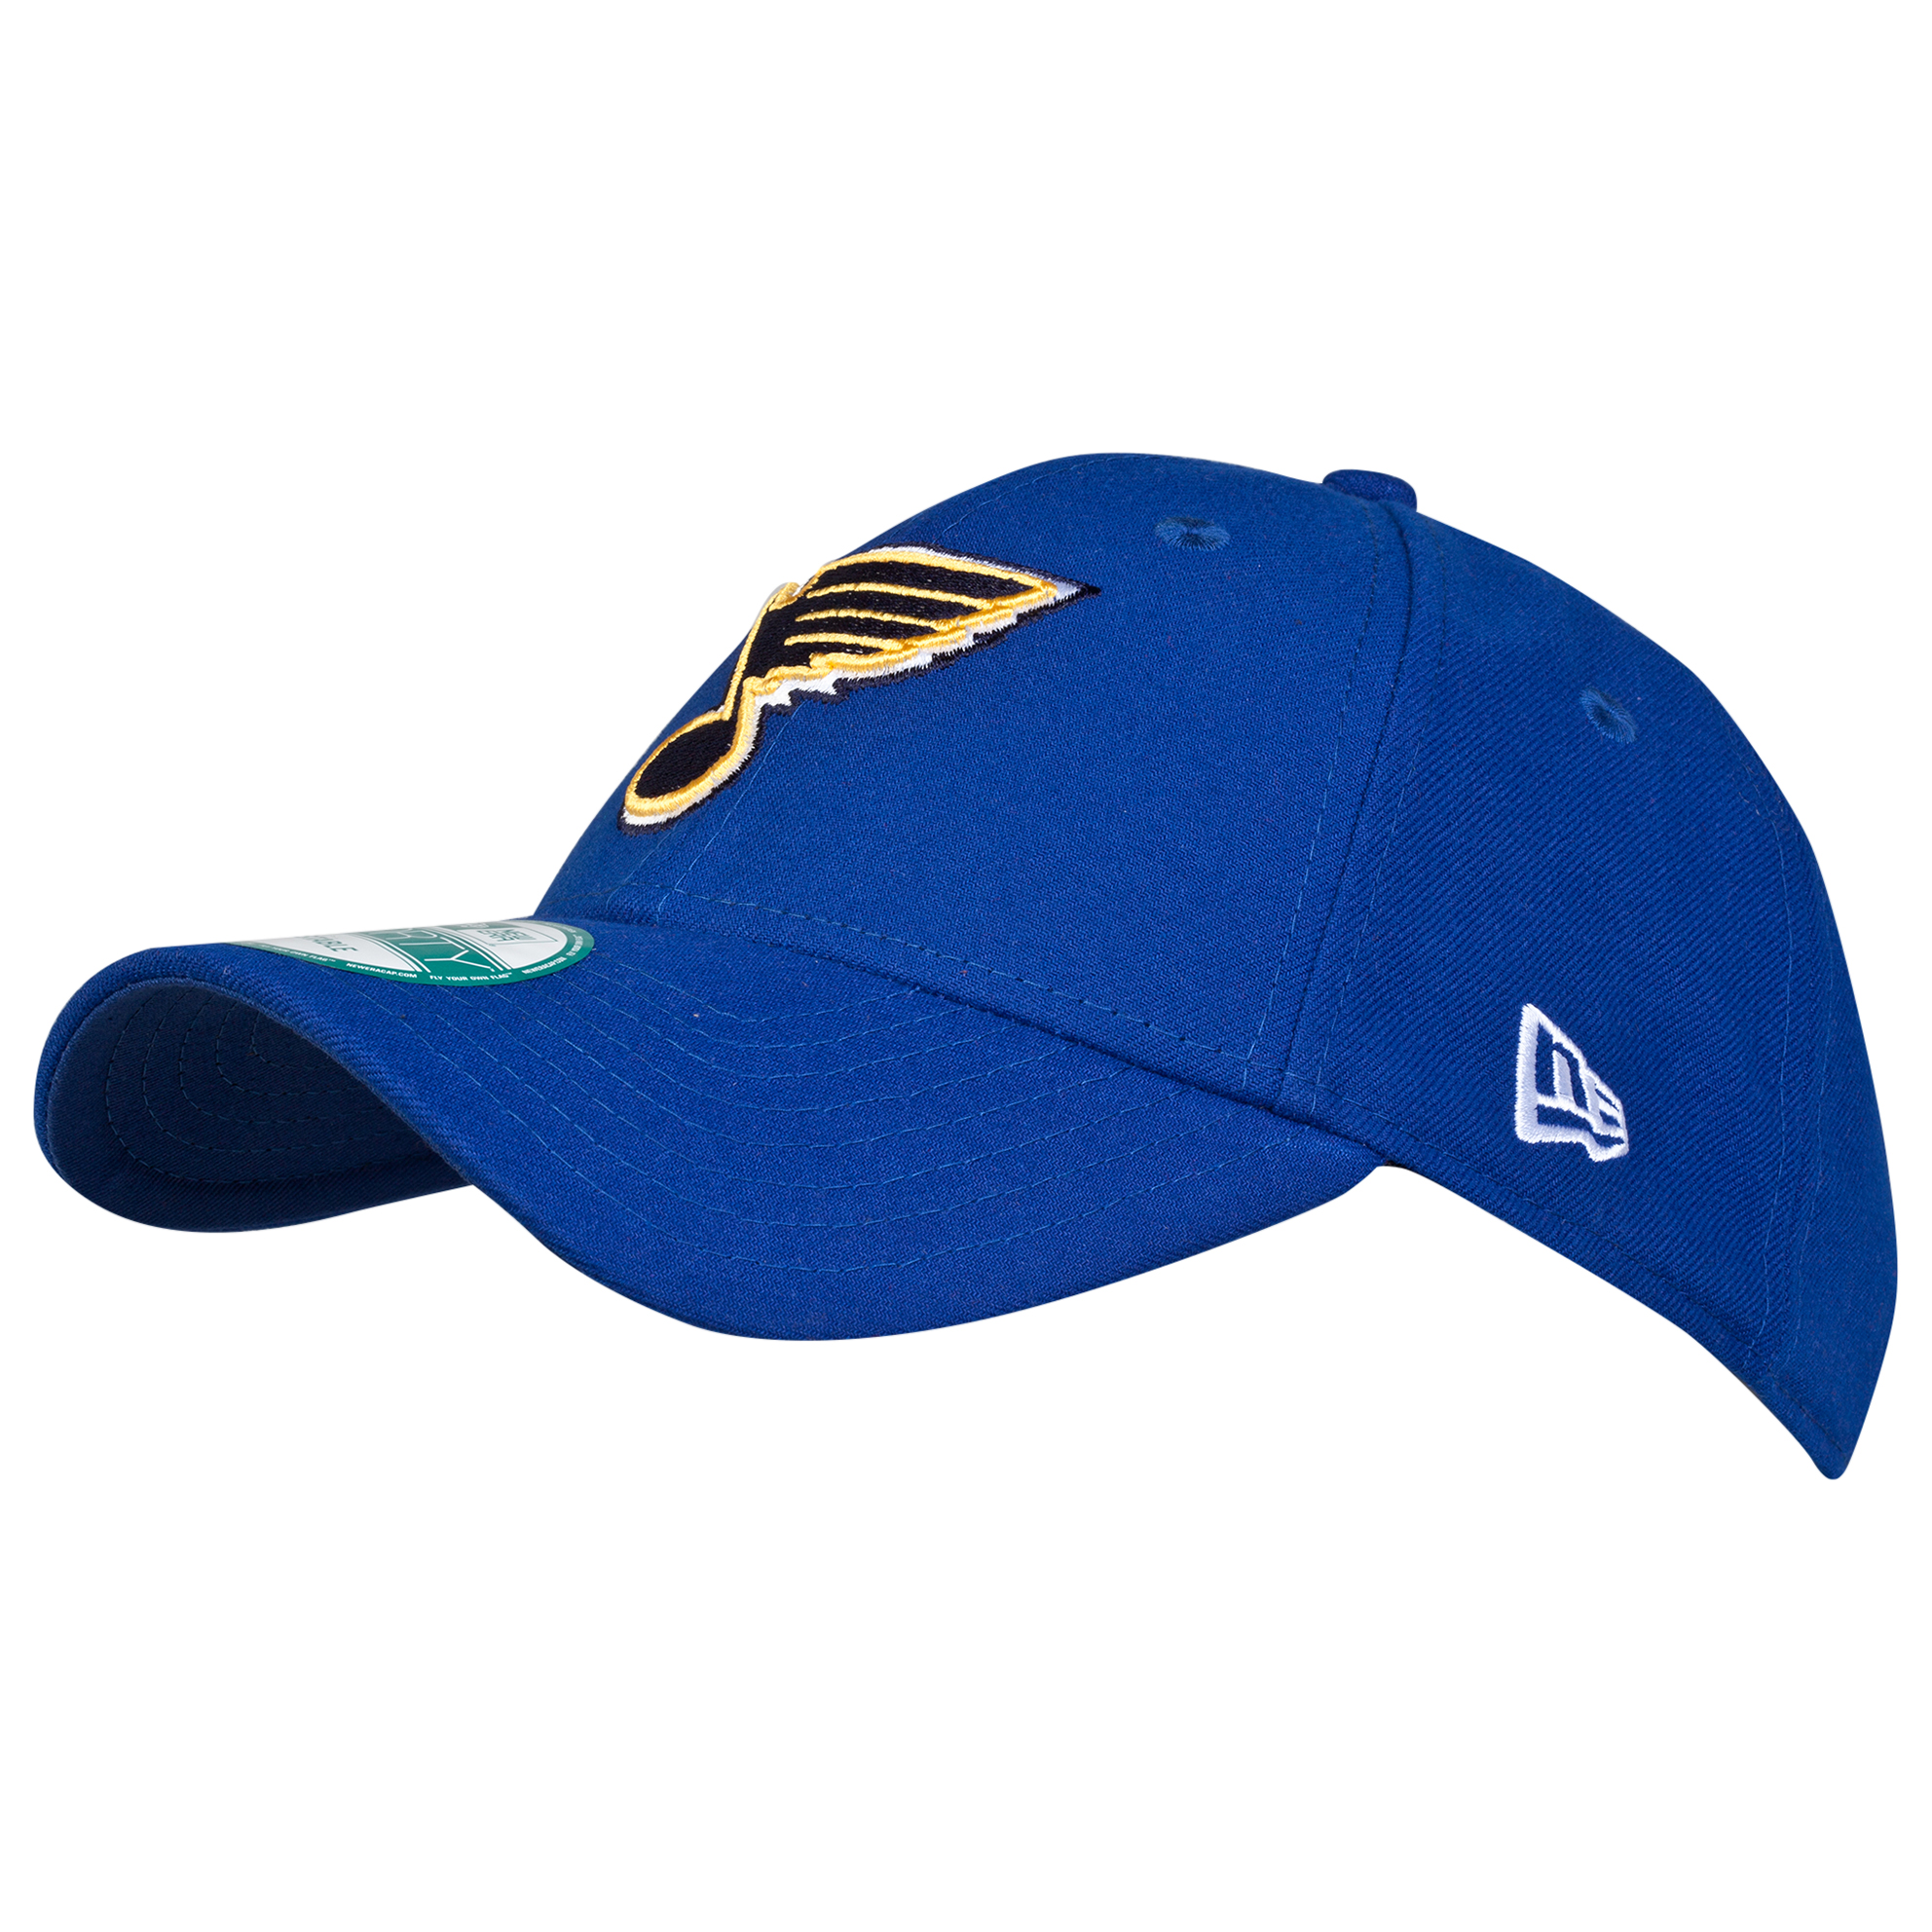 St. Louis Blues New Era The League 9FORTY Cap